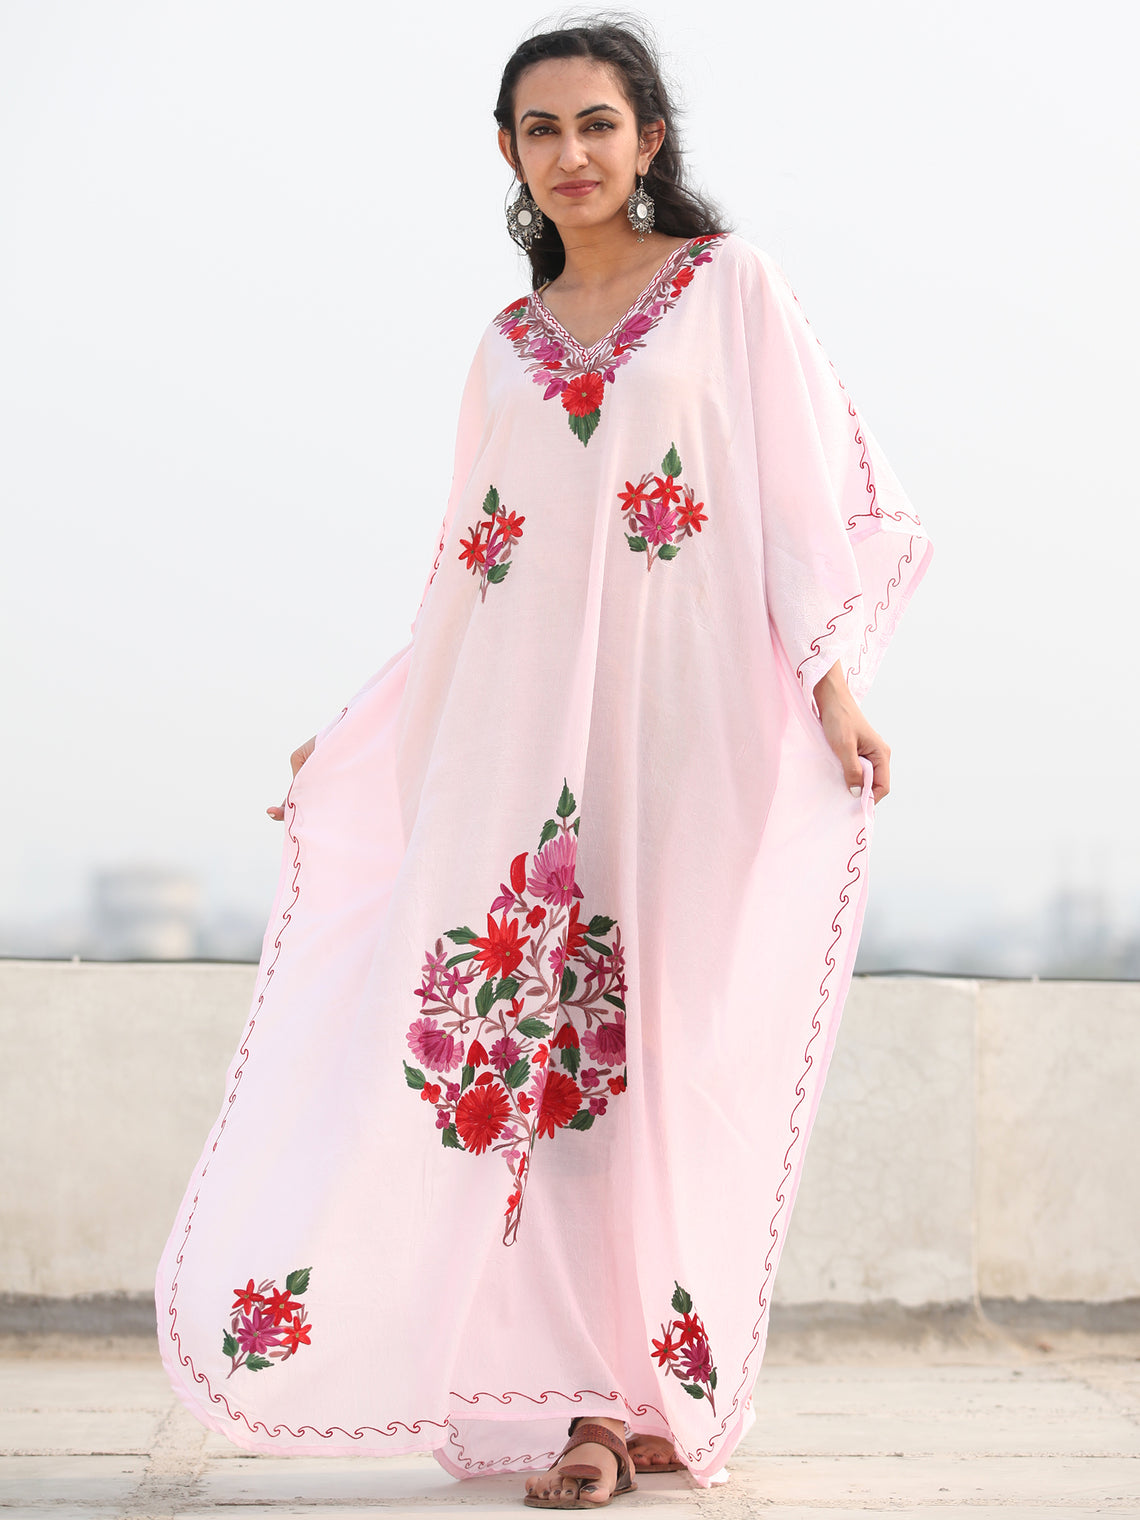 White MultiColor Aari Embroidered Kashmere Free Size Kaftan in Crushed Cotton - K11K074